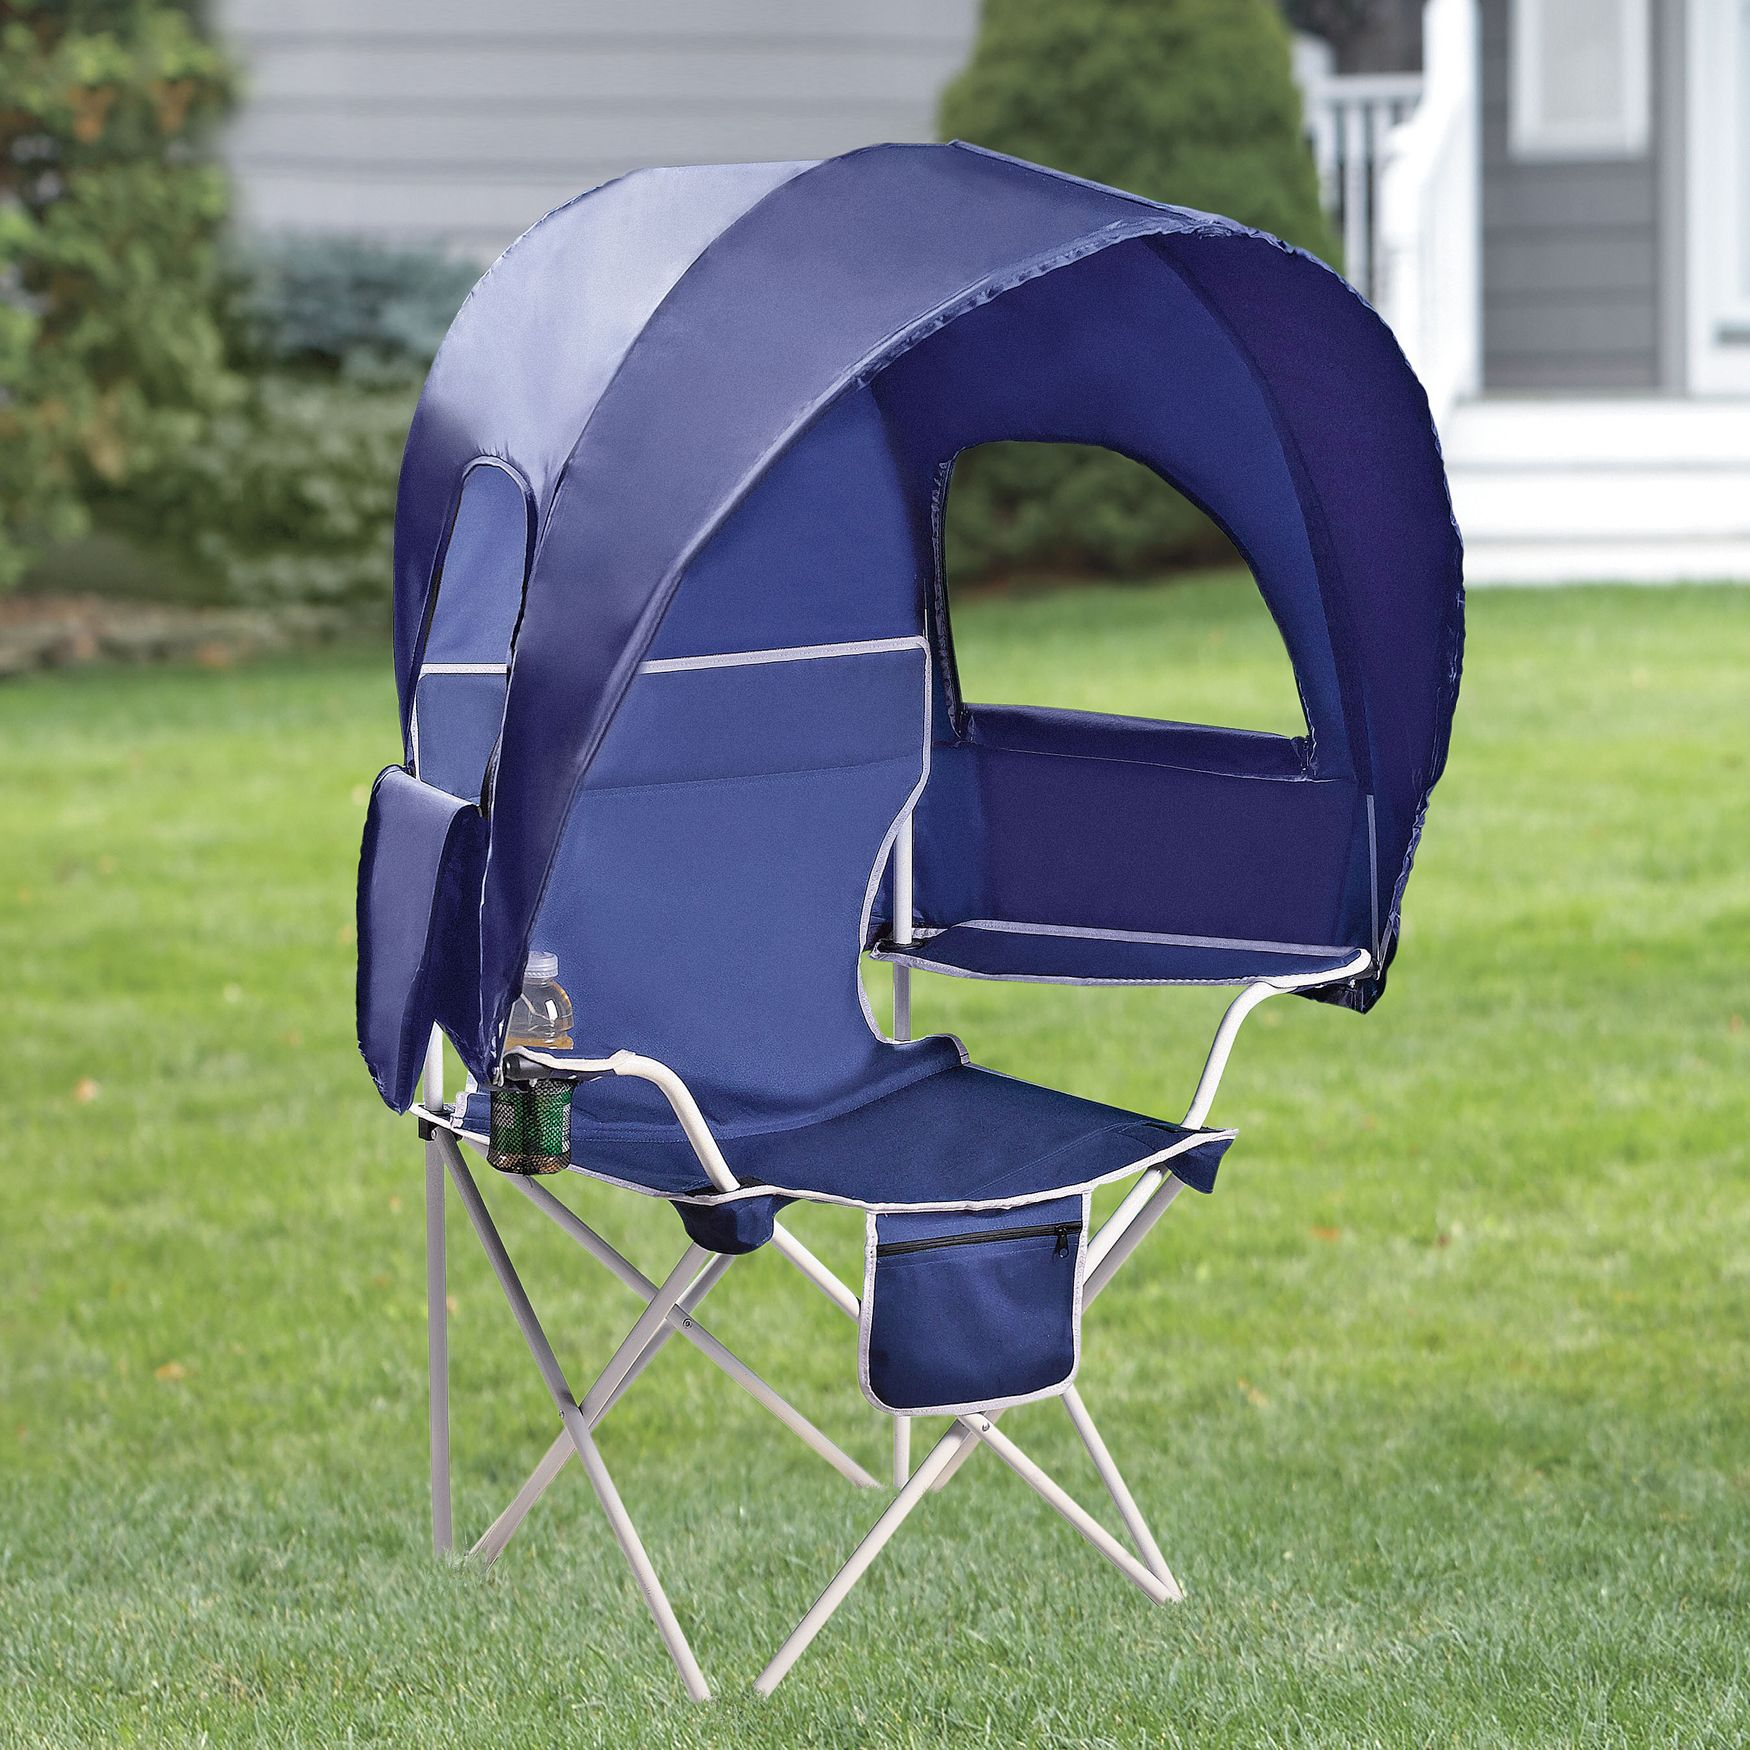 Camping Chair With Canopy Camp Chair With Canopy Baseball Stuff Pinterest Camping